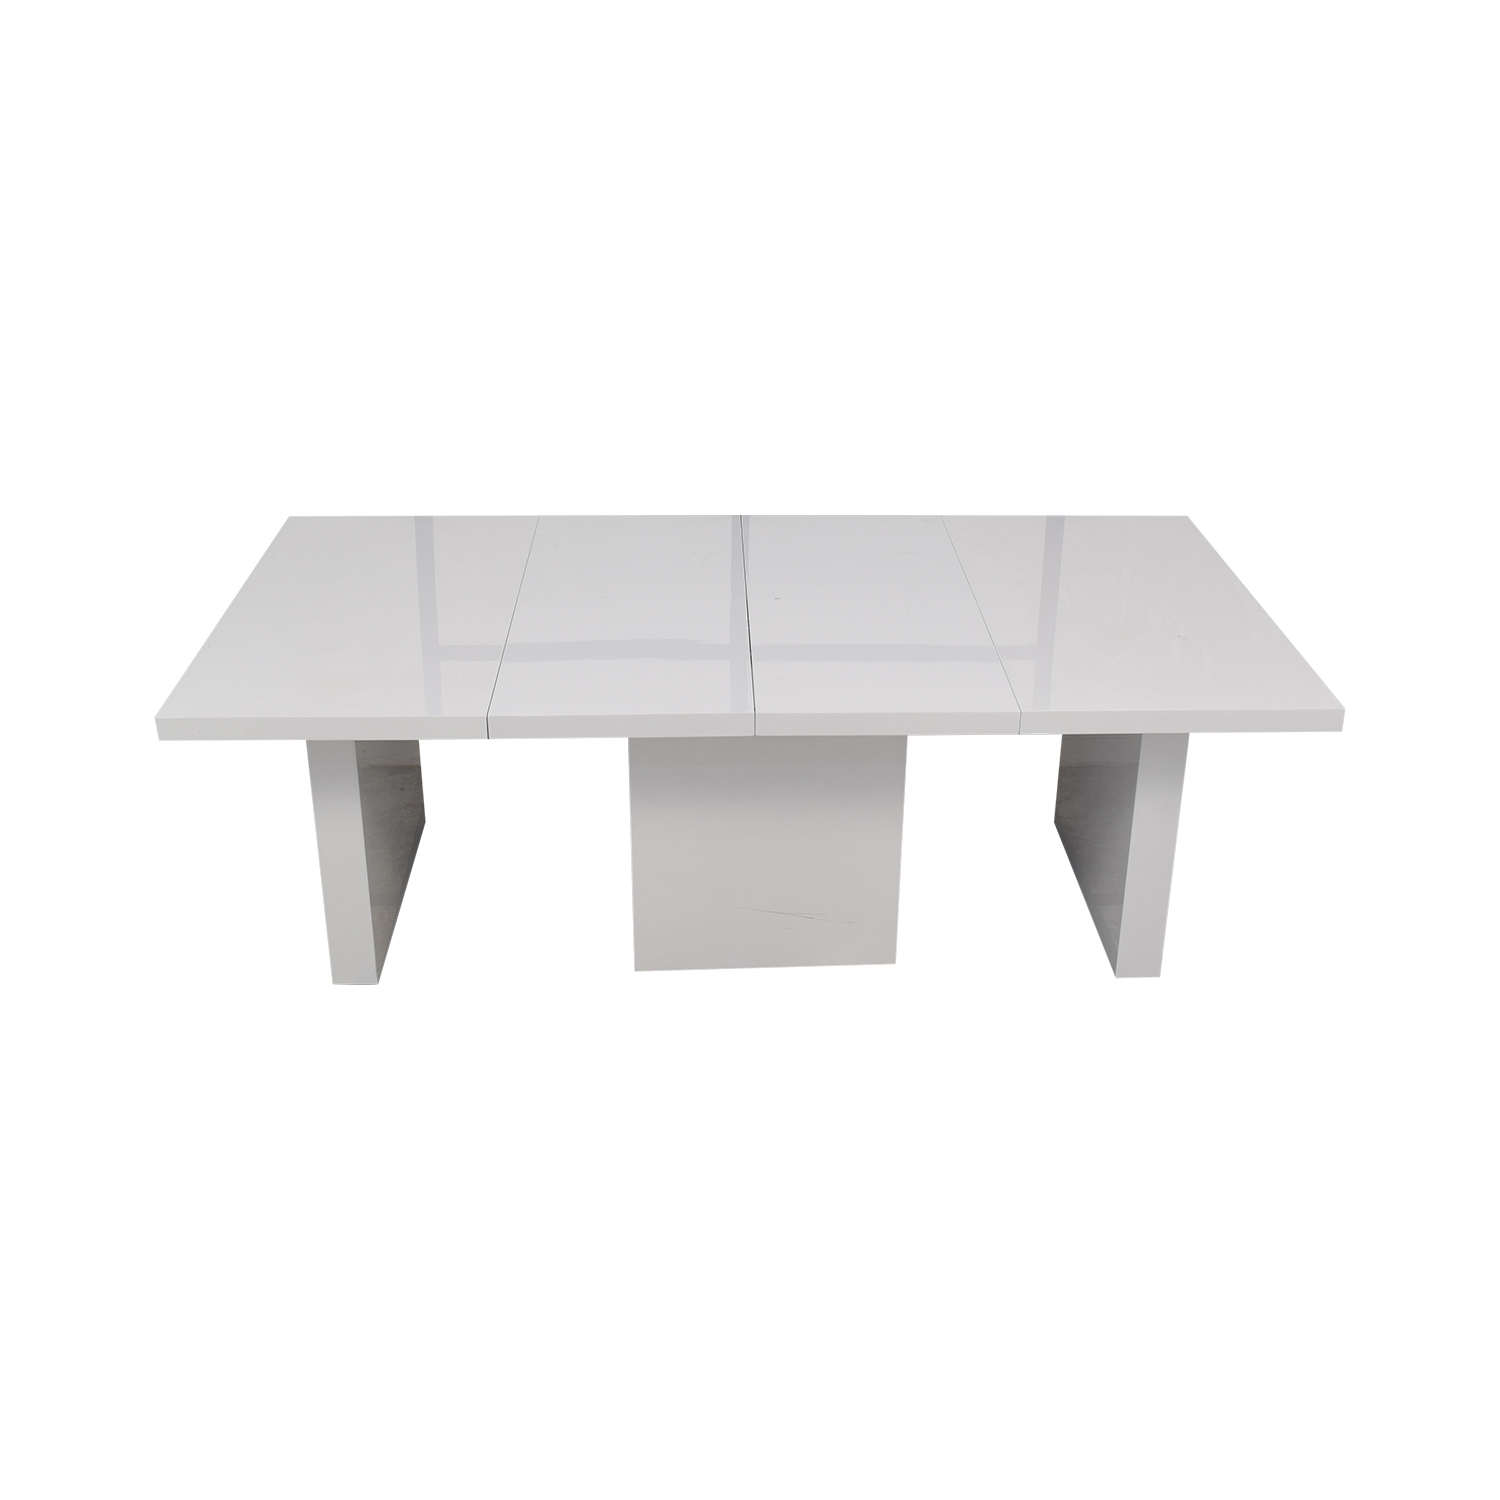 Orren Ellis Orren Ellis Stotfold White Extendable Table coupon